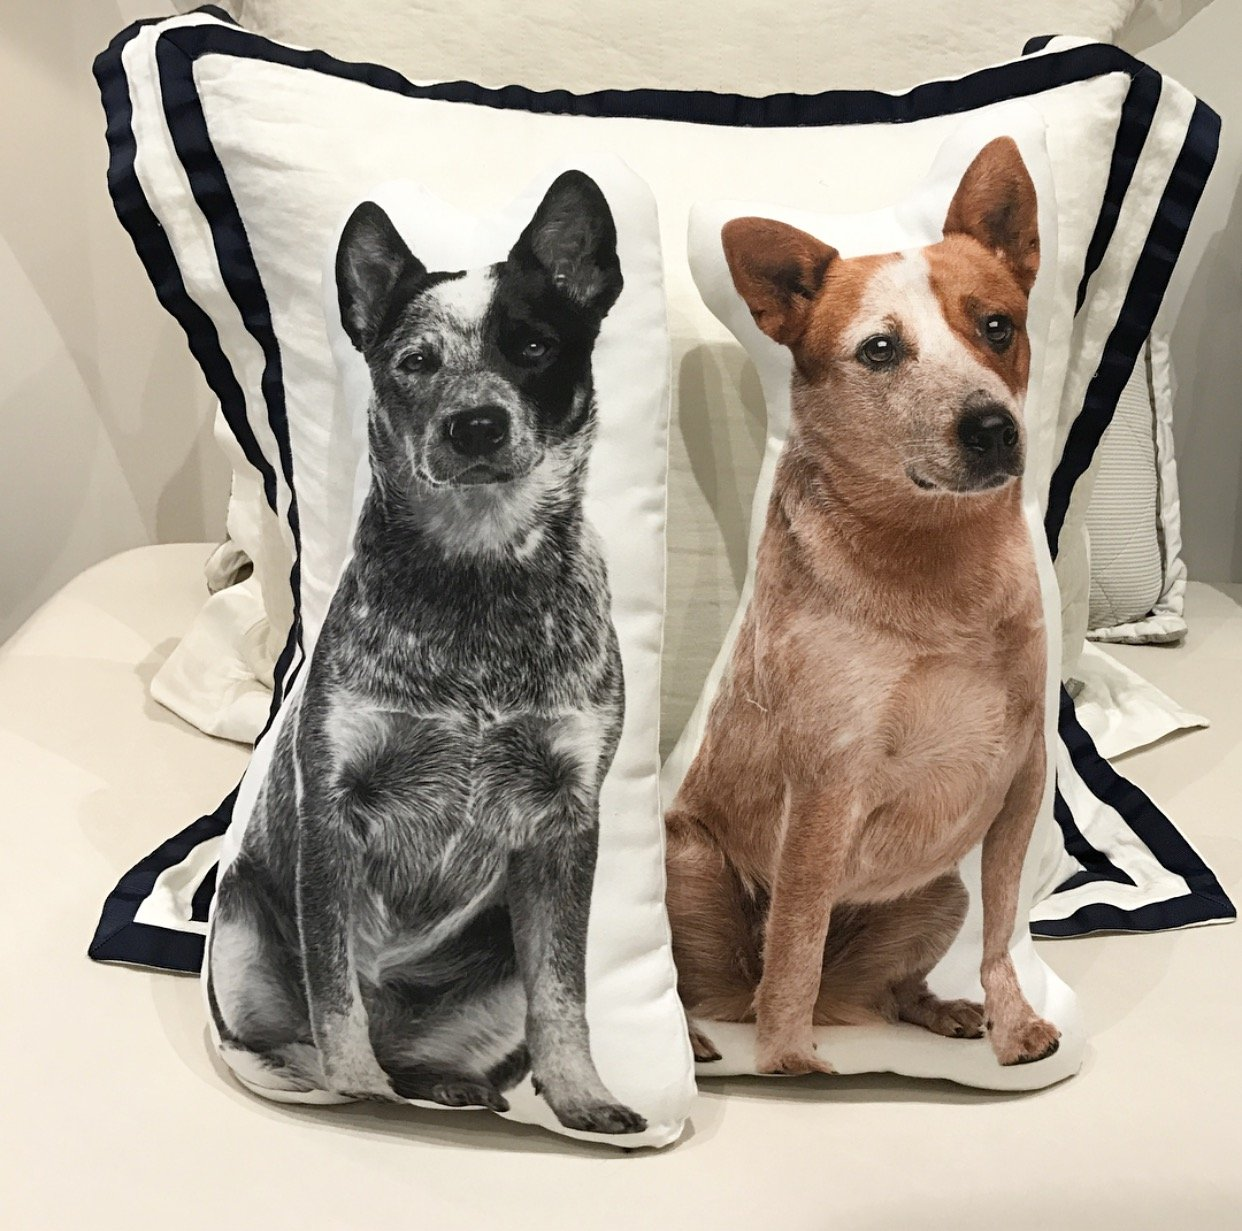 Cushion Co - Red Heeler Dog Shaped Pillow 16'' x 12'' by Cushion Co (Image #4)